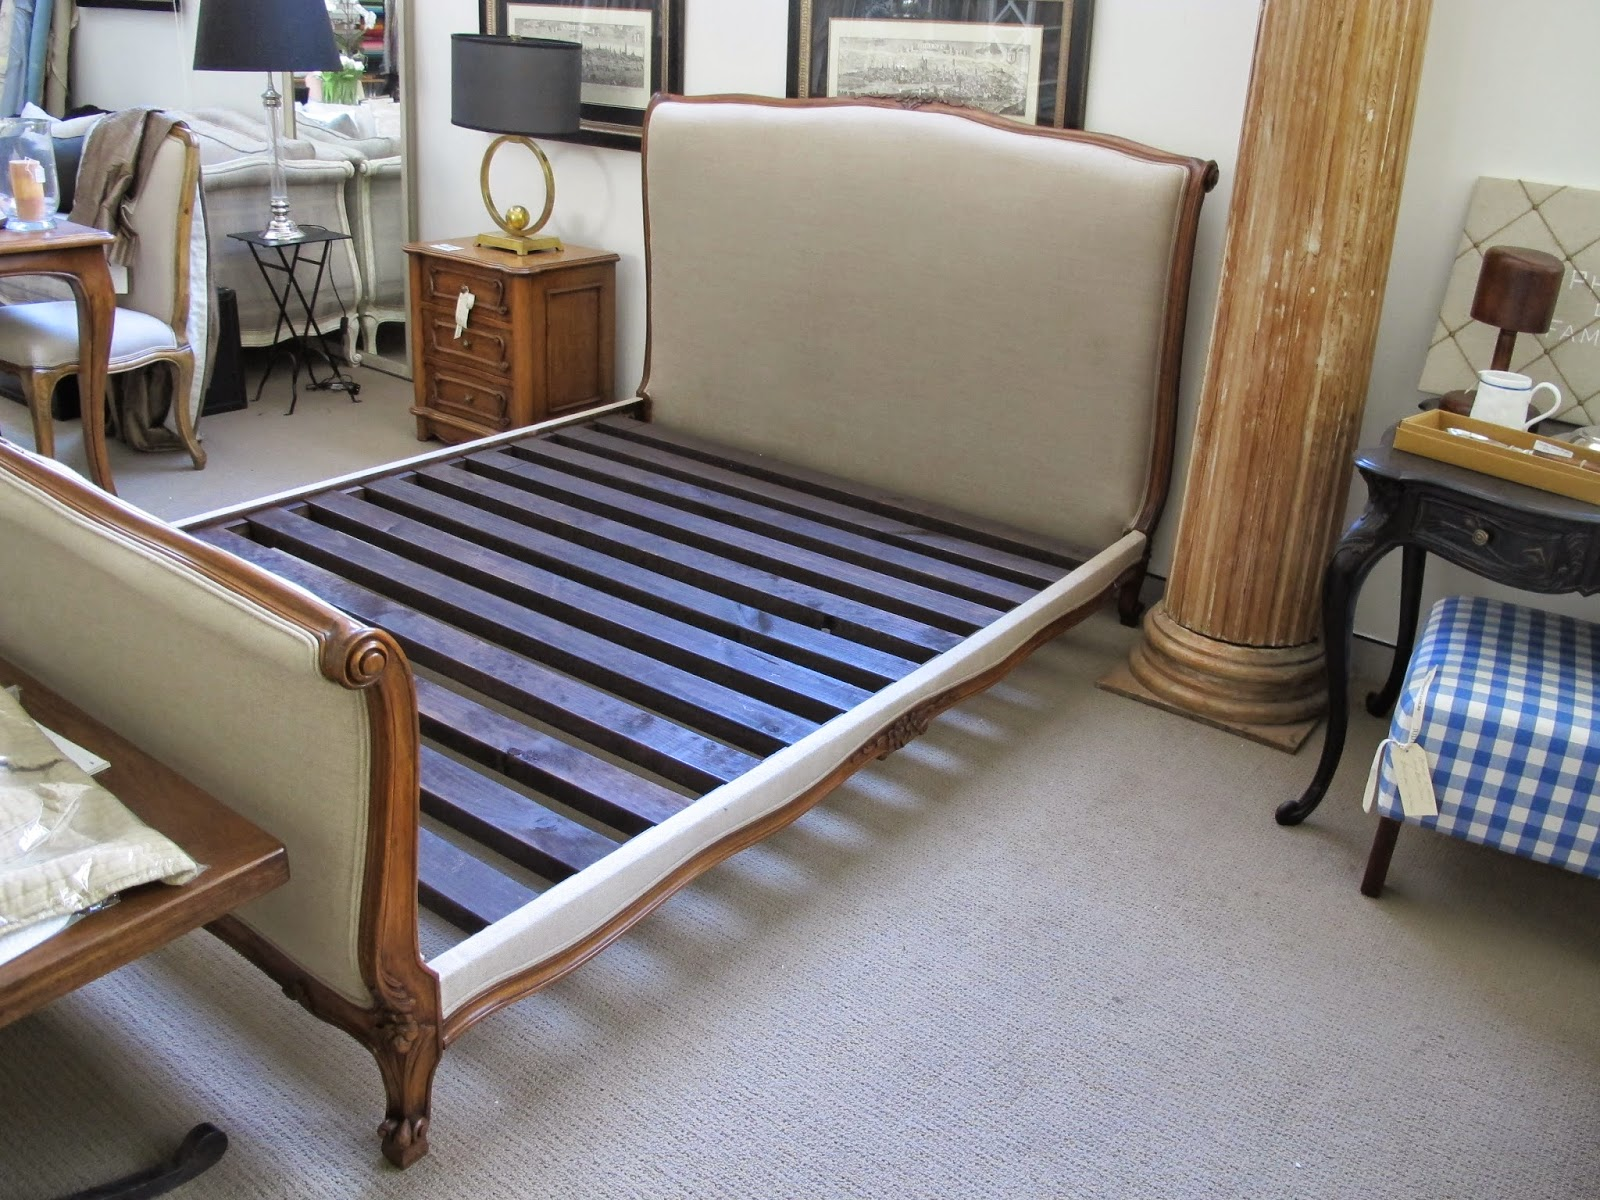 Bedhead Designs complete sleigh bed with slats can be upholstered in any fabric.